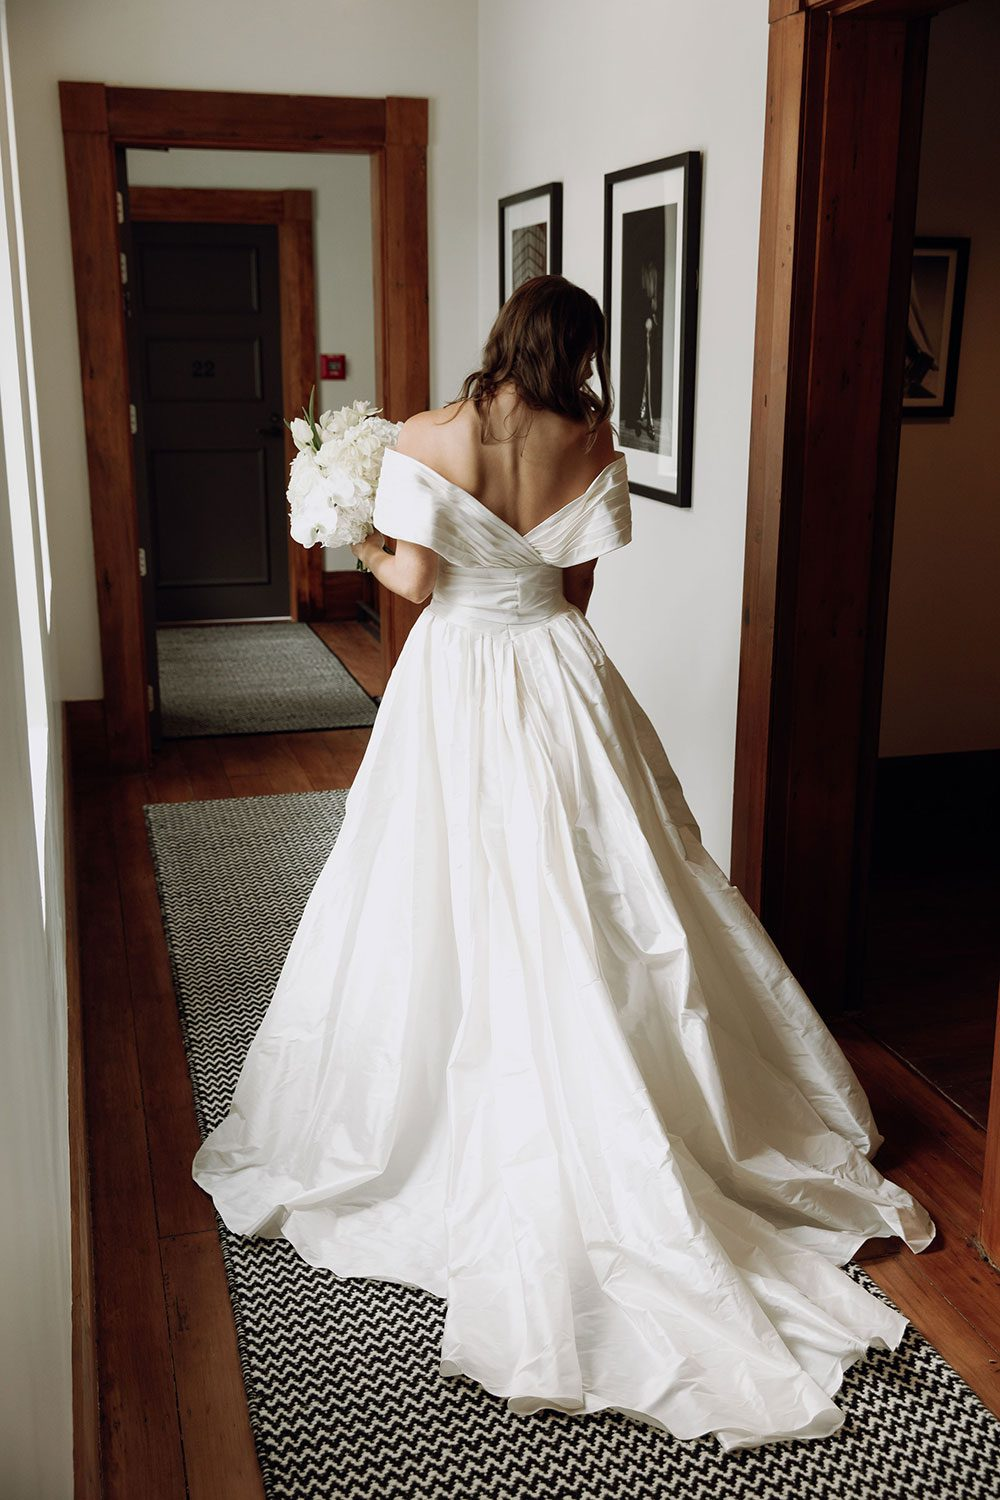 Bride wearing bespoke off shoulder bodice made with silk dupion and long train by NZ wedding dress maker Vinka Designs - back view in doorway